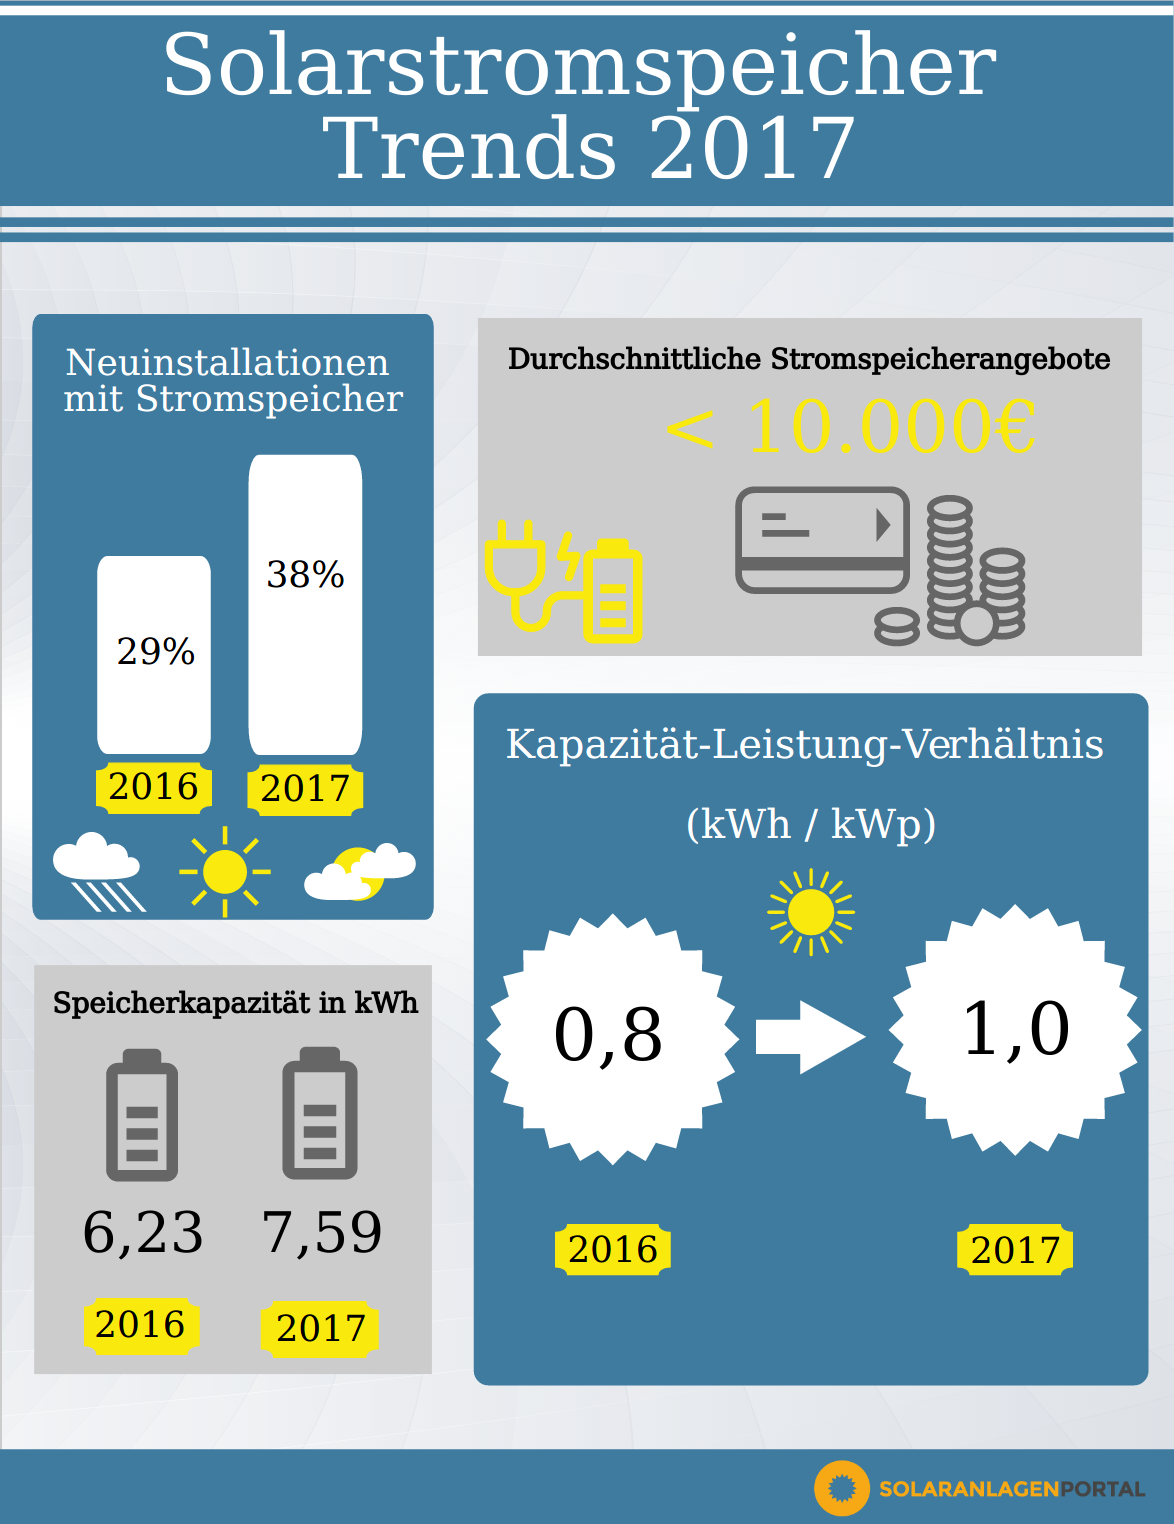 Solarstromspeicher Trends 2017